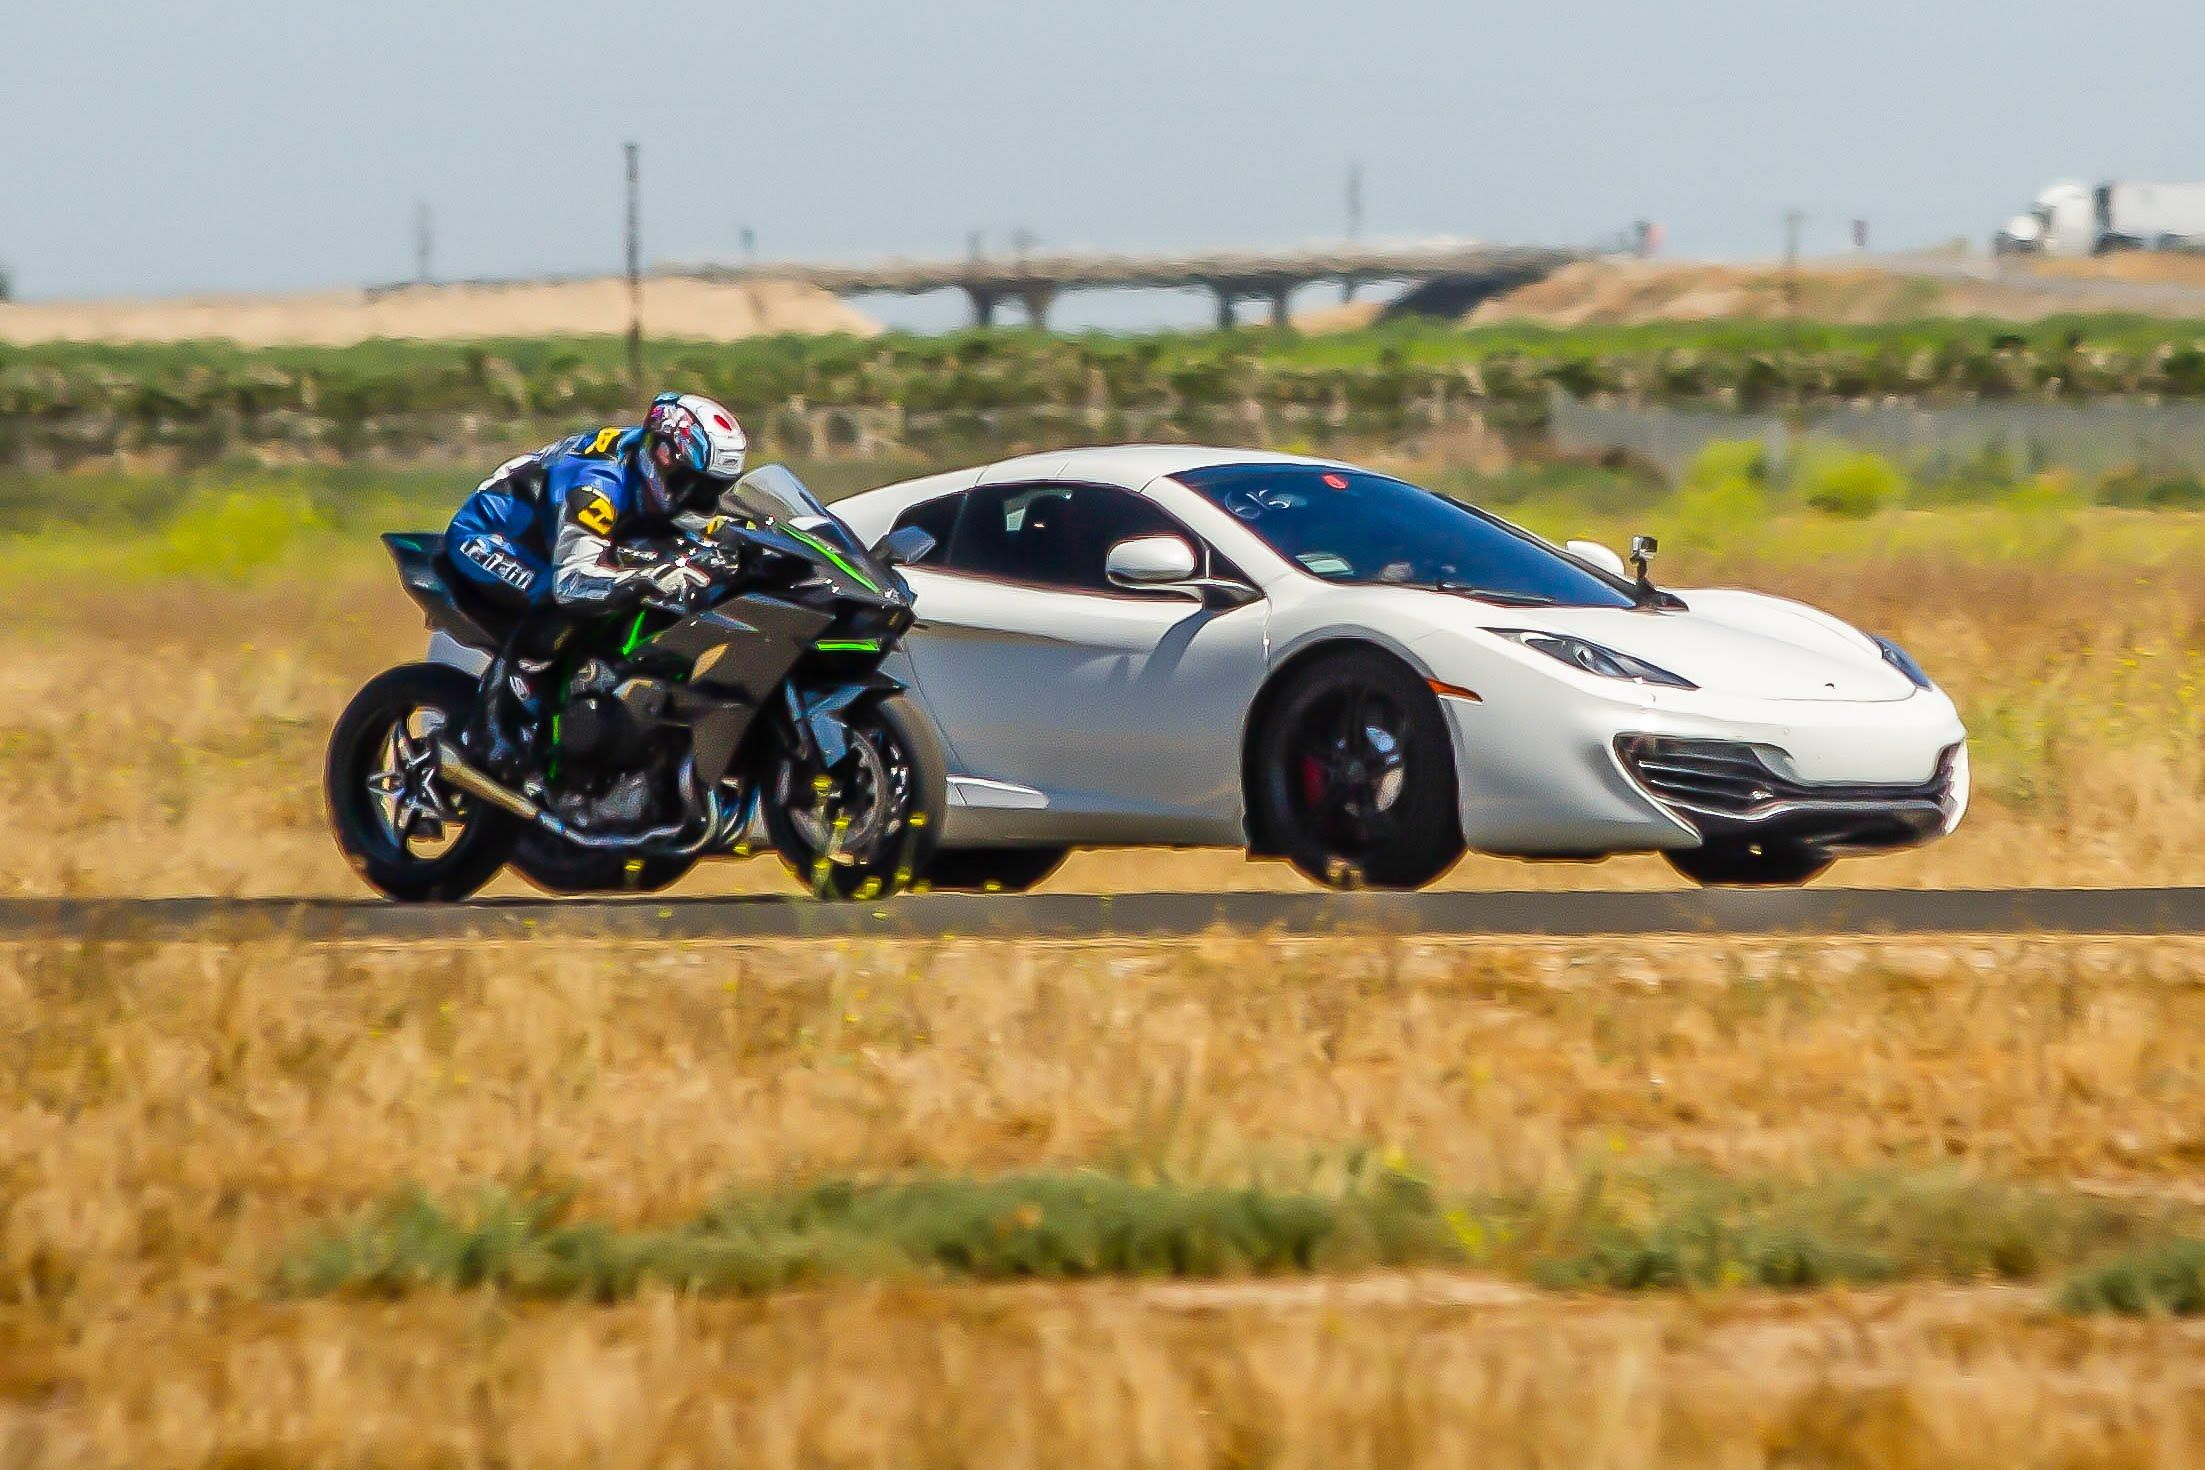 Kawasaki H2r Vs Mclaren Mp4 12c Supercar 1 2 Mile Airstrip Race